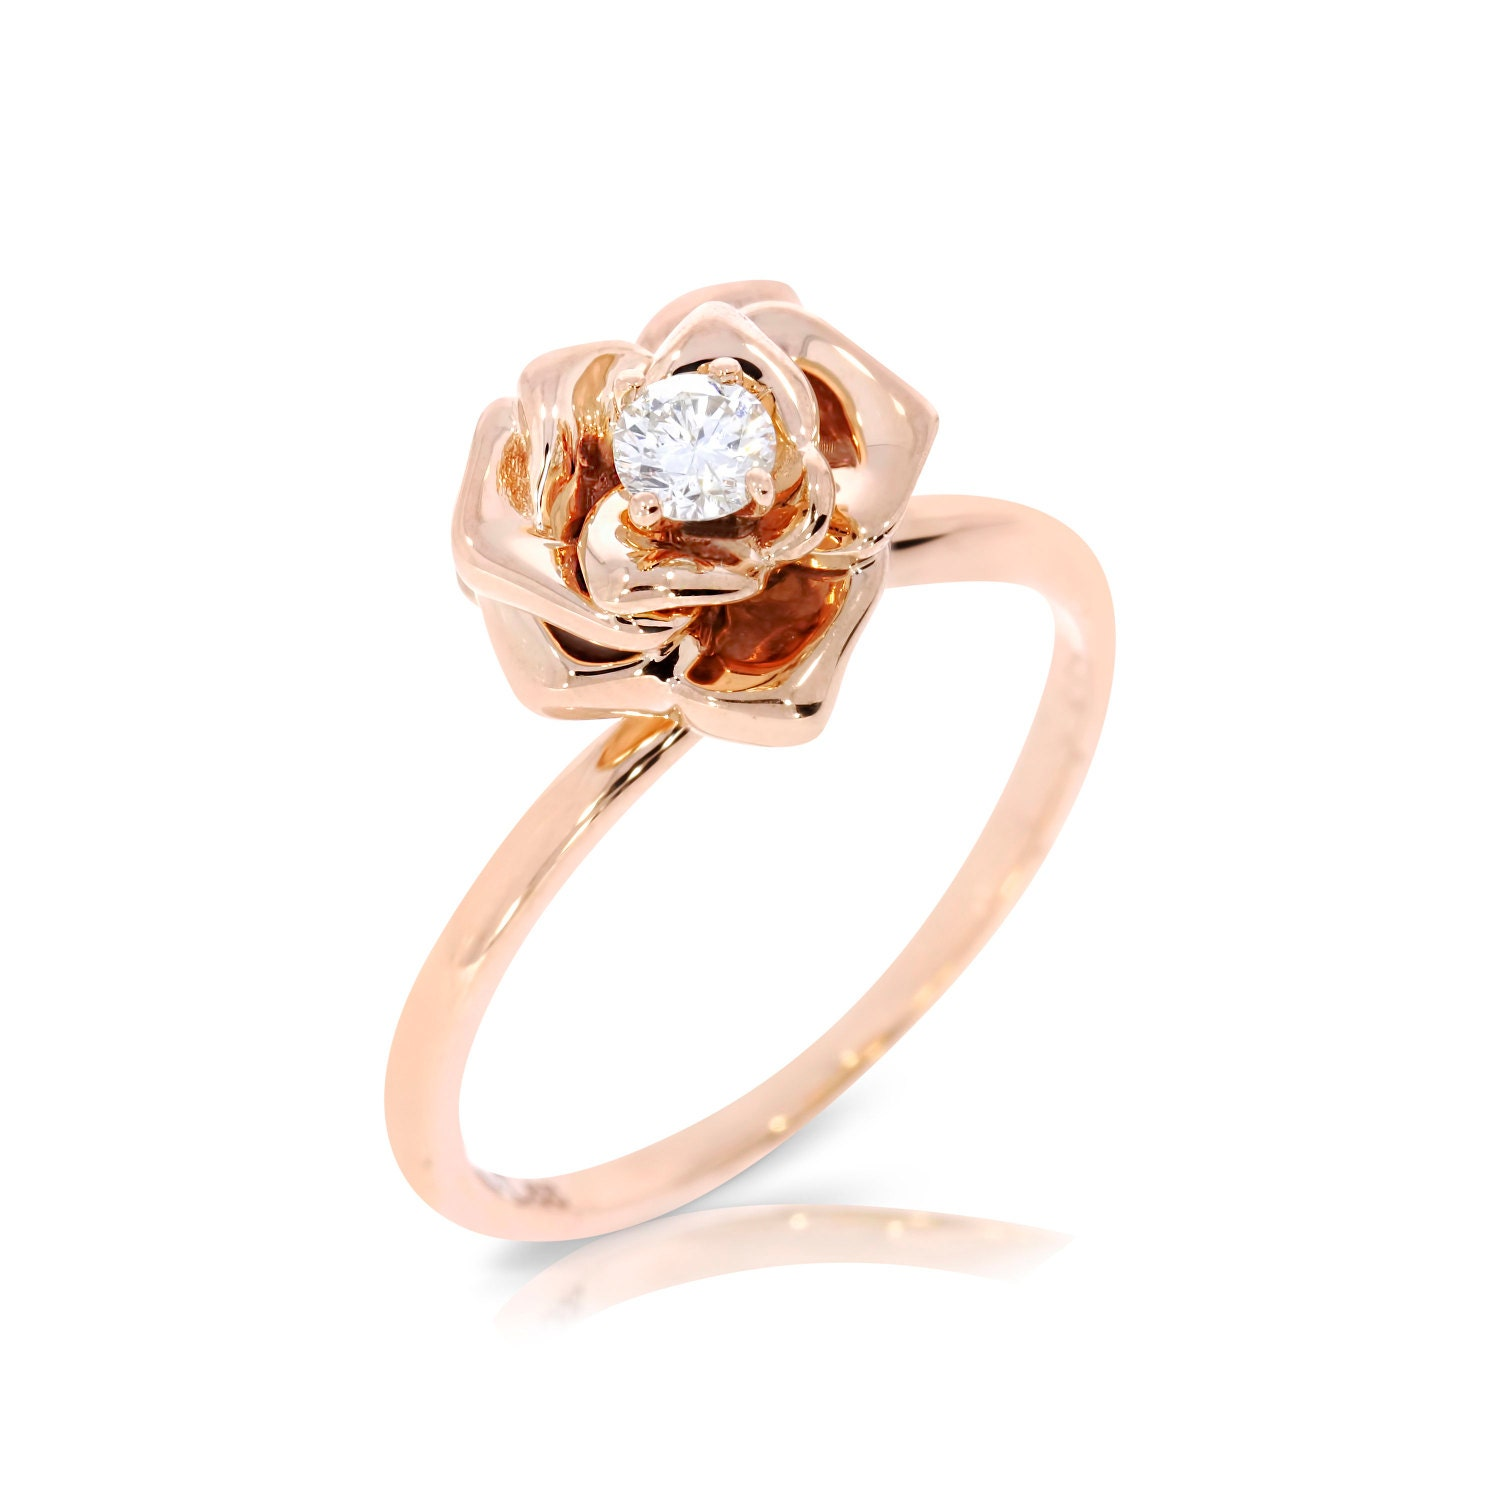 Diamond Engagement Ring Flower Engagement Ring Rose by ybsoulj